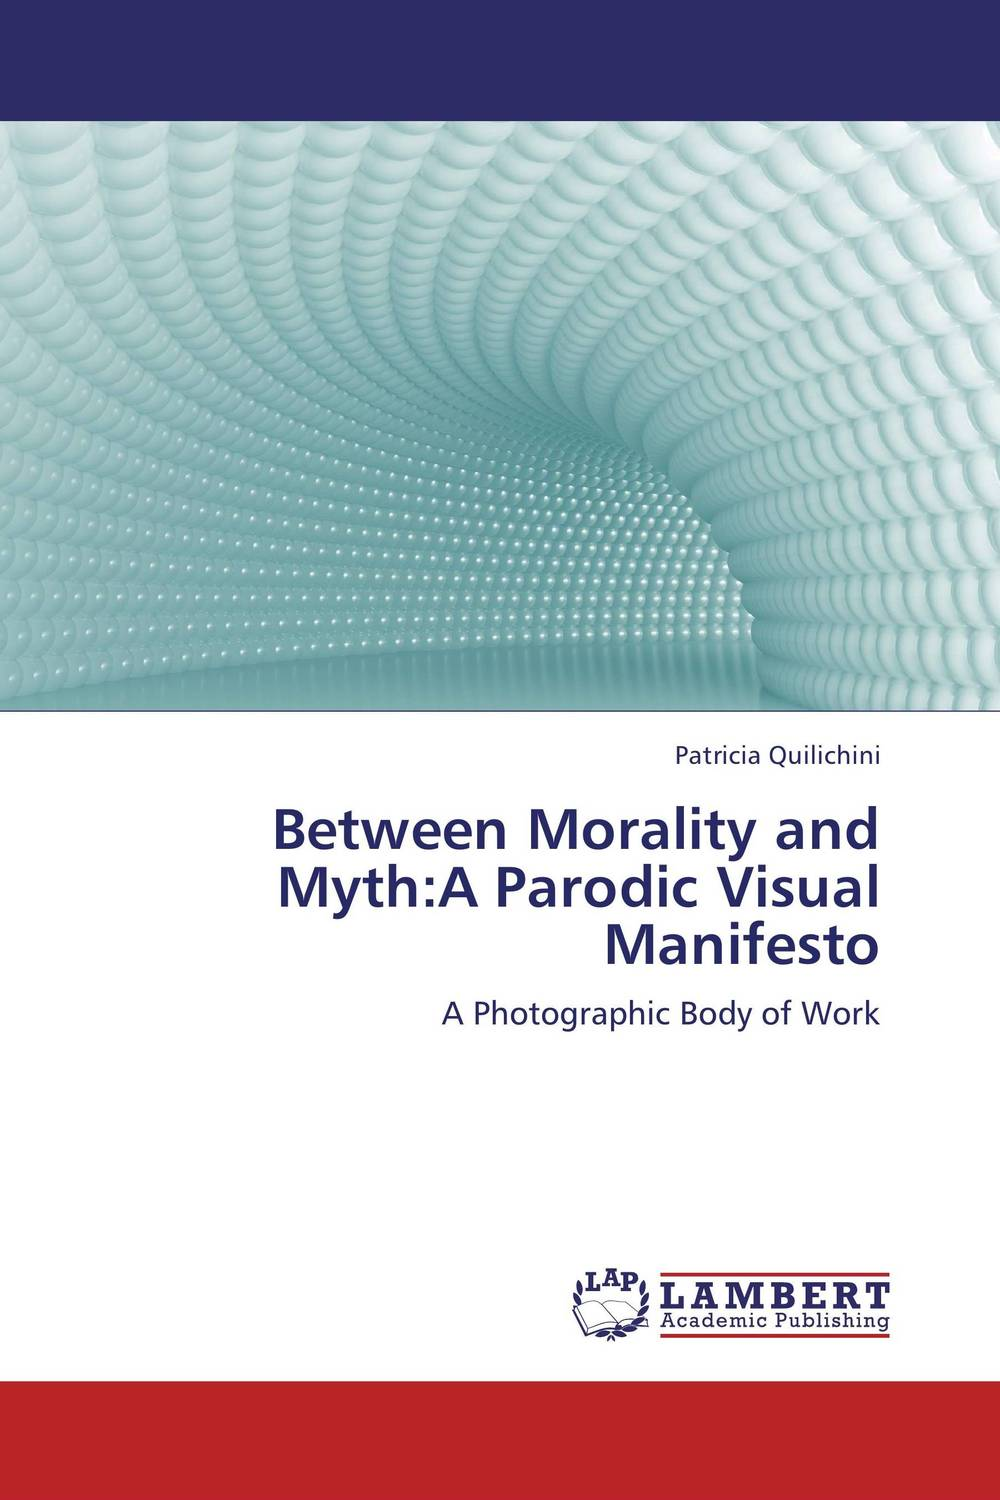 Between Morality and Myth:A Parodic Visual Manifesto елочные украшения magic time ангел музыкант